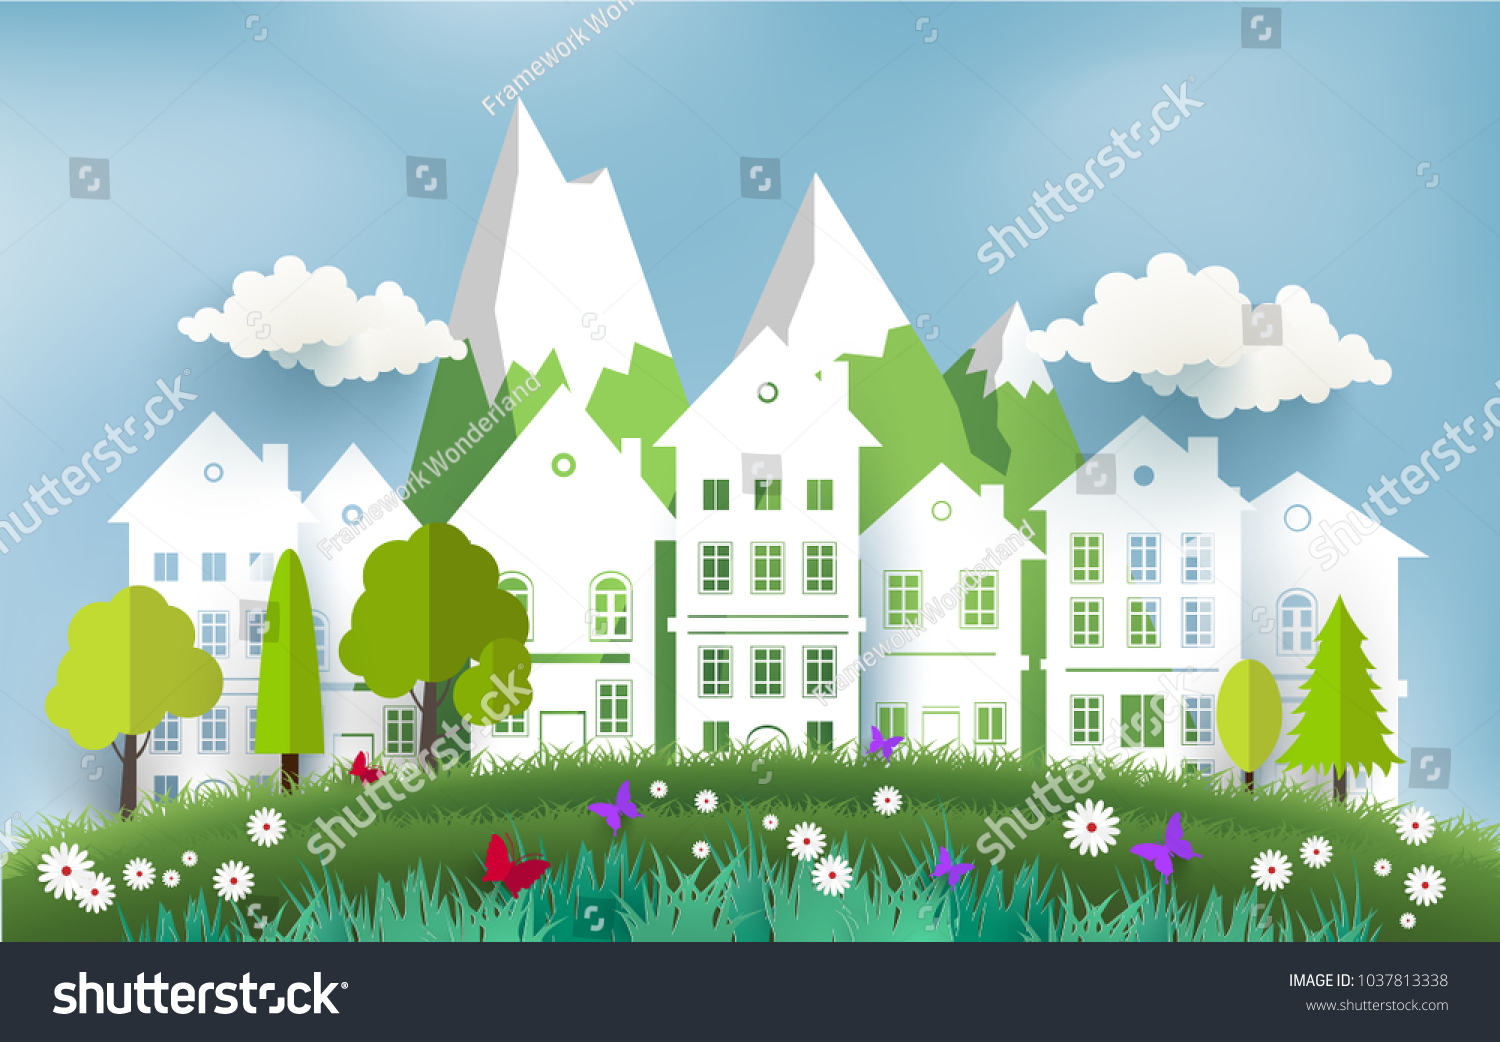 Spring Break Scenery Green Grass Beautiful Stock Vector Royalty